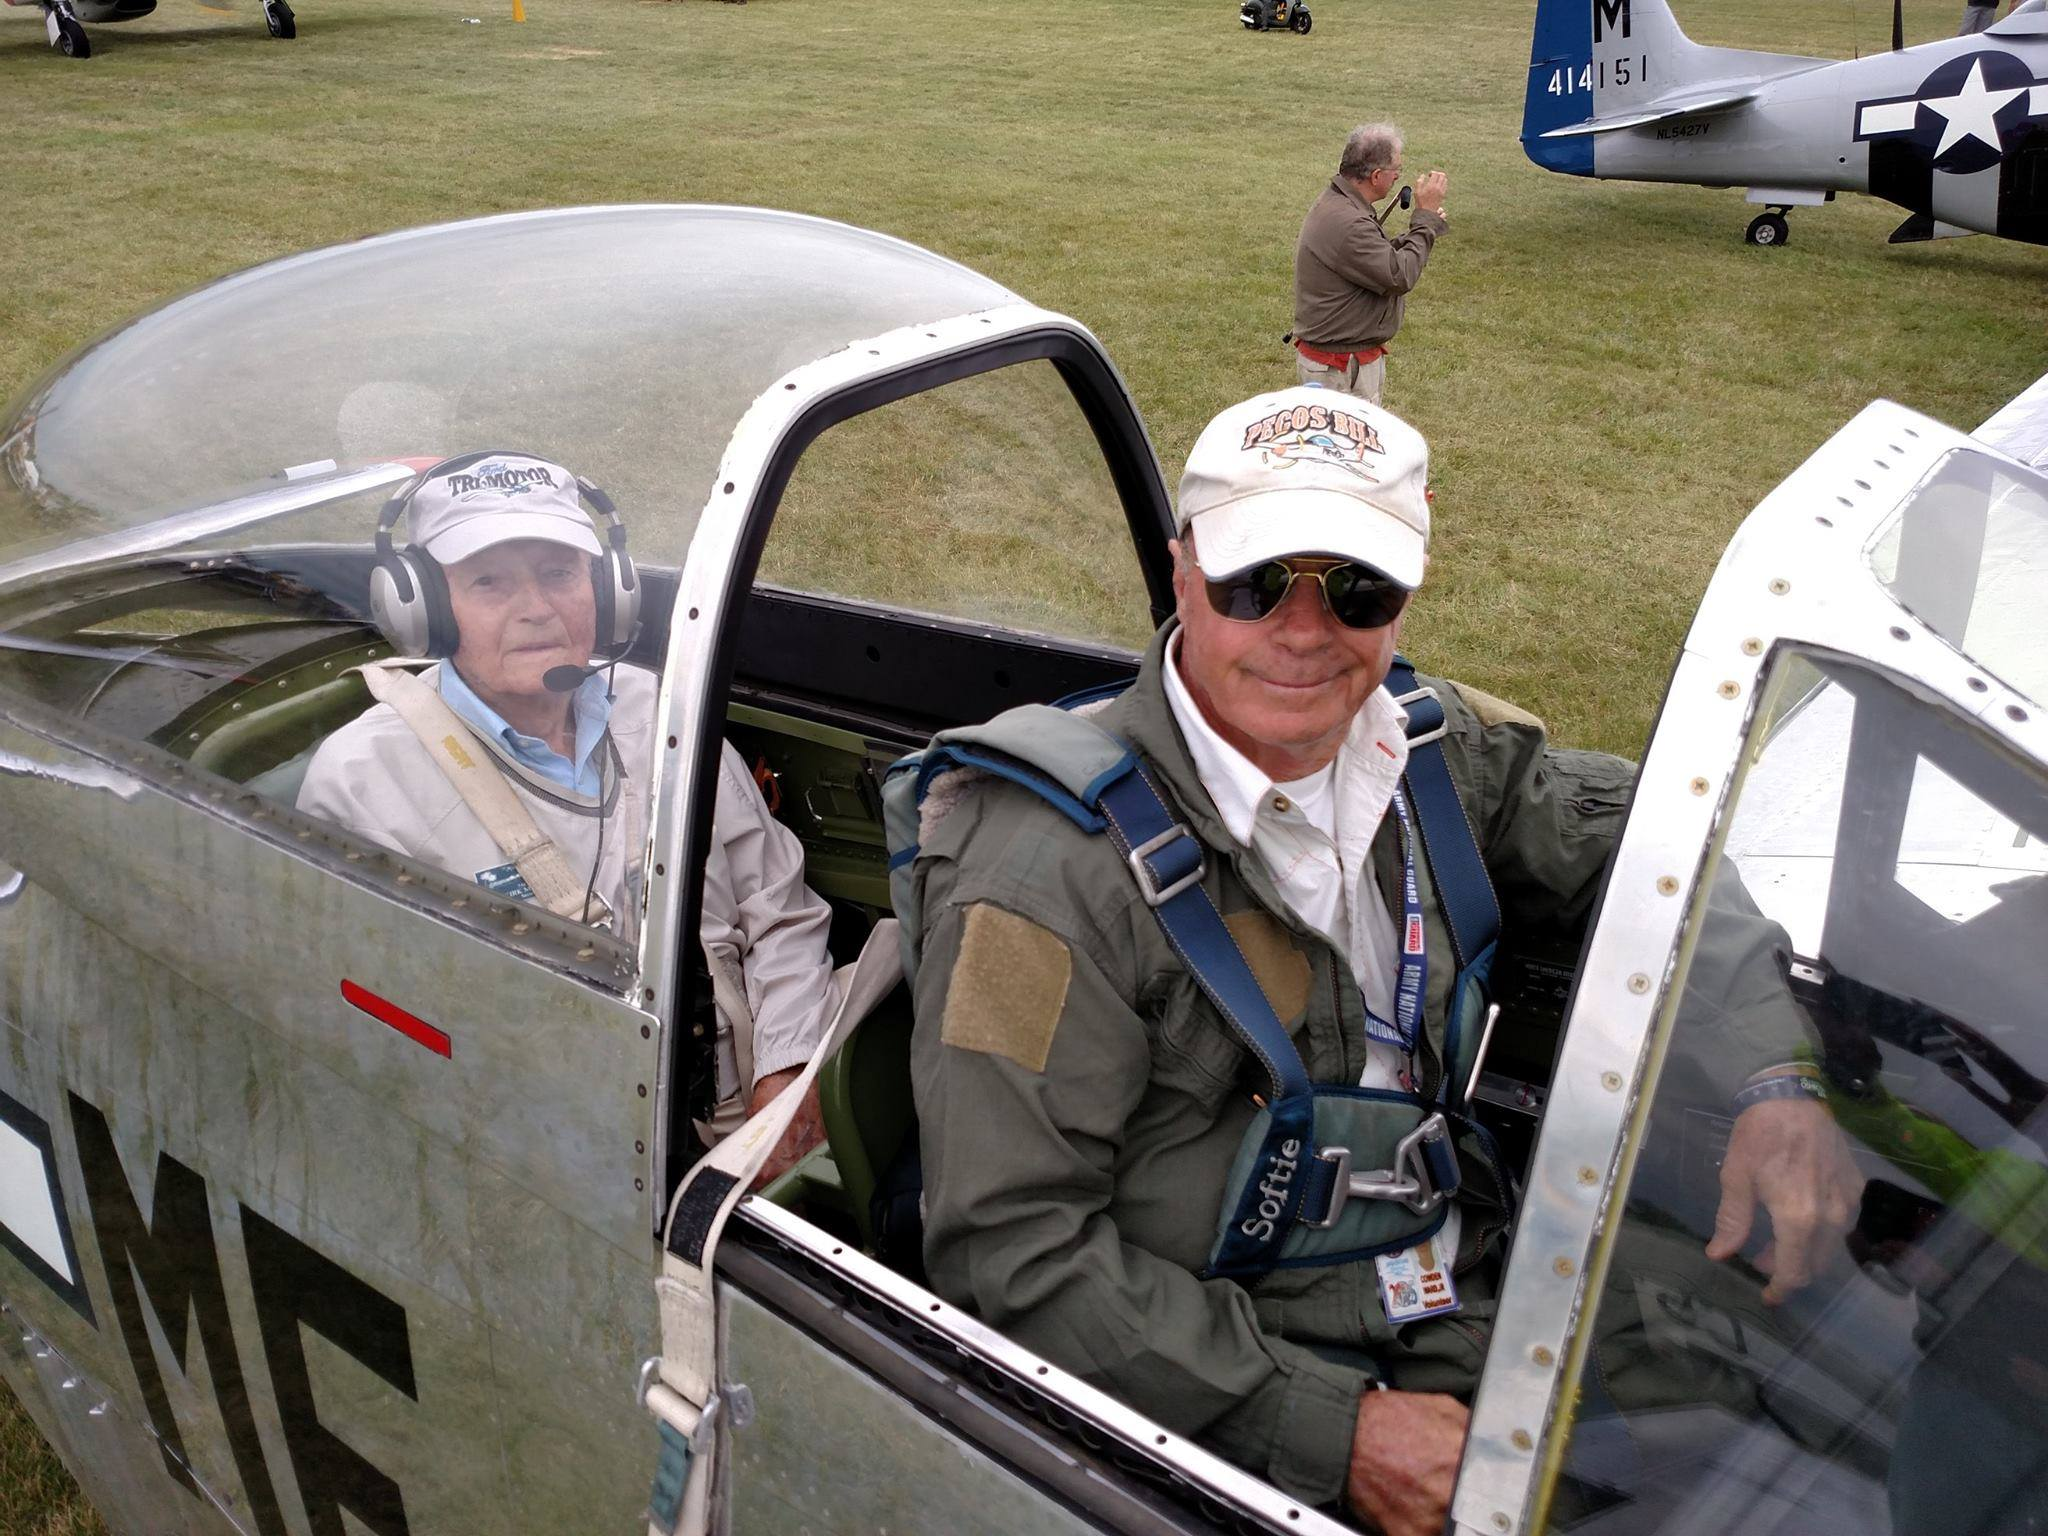 Pilot, passenger who died in WWII plane crash identified